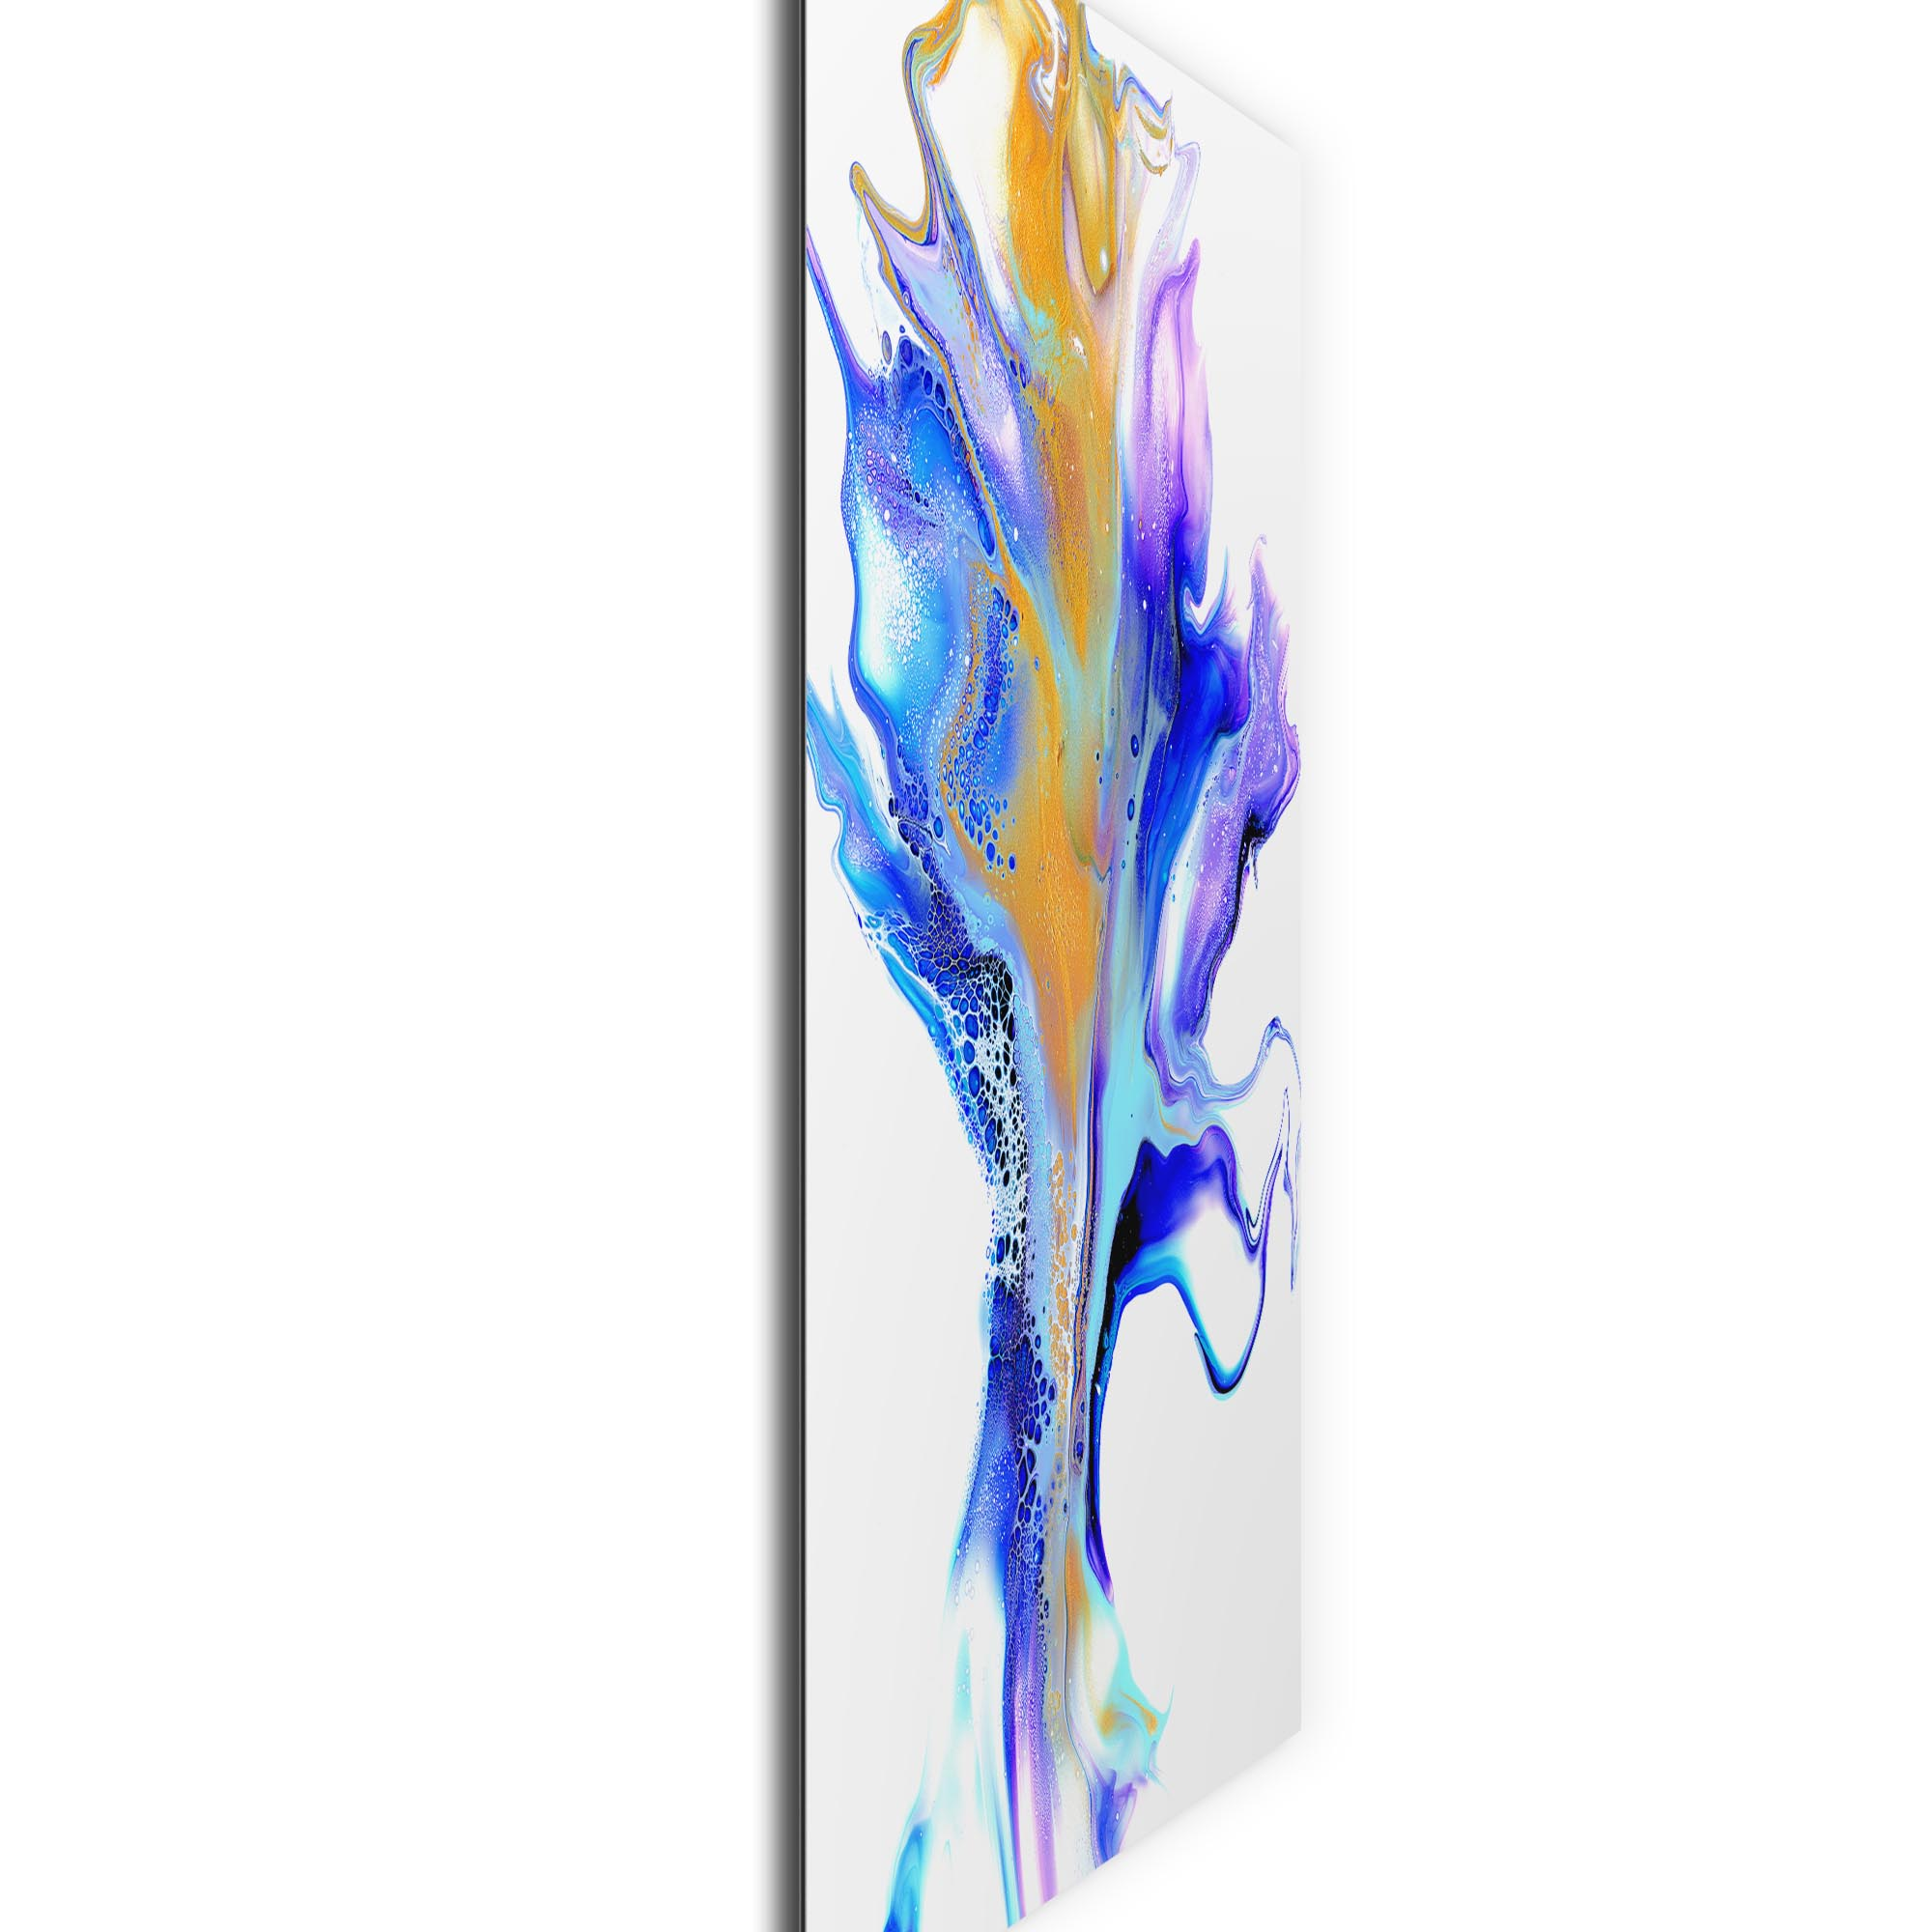 Dance by Elana Reiter - Abstract Wall Art, Modern Home Decor (24in x 32in) - Image 2